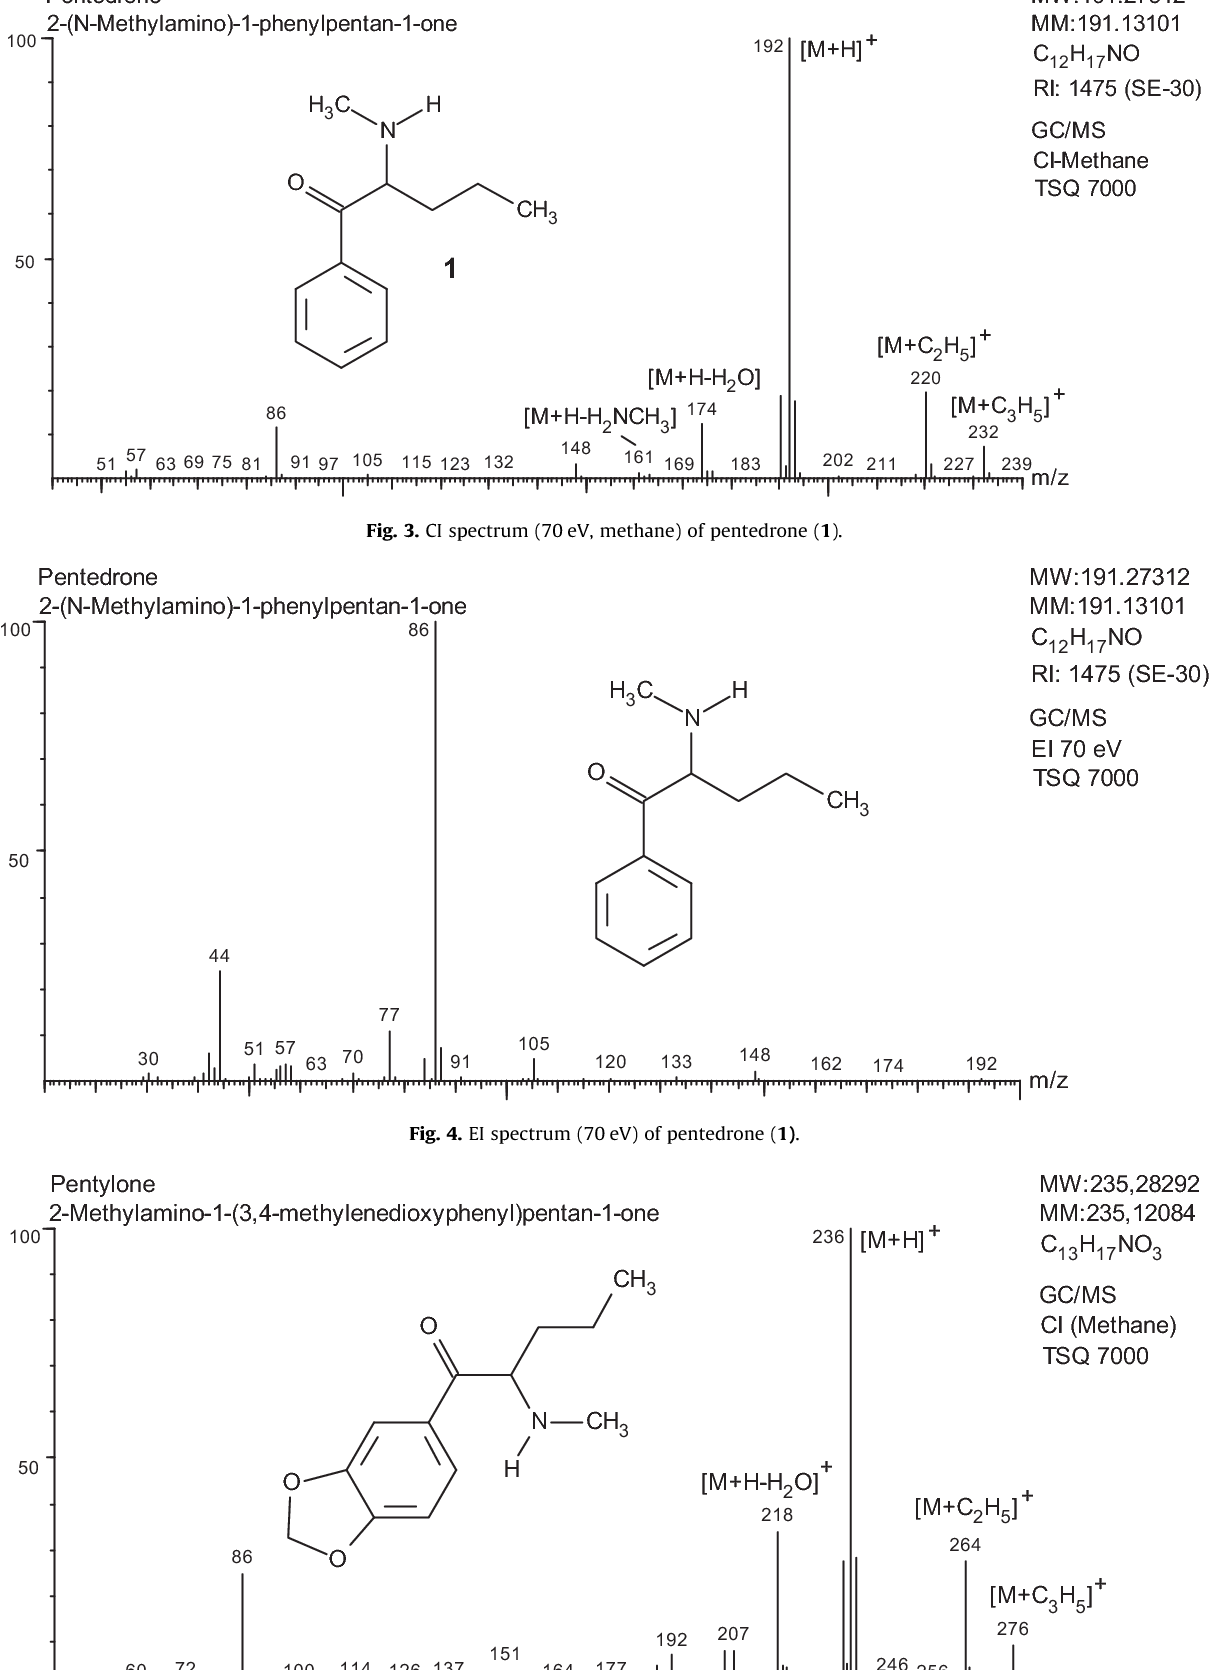 Mass, NMR and IR spectroscopic characterization of pentedrone and